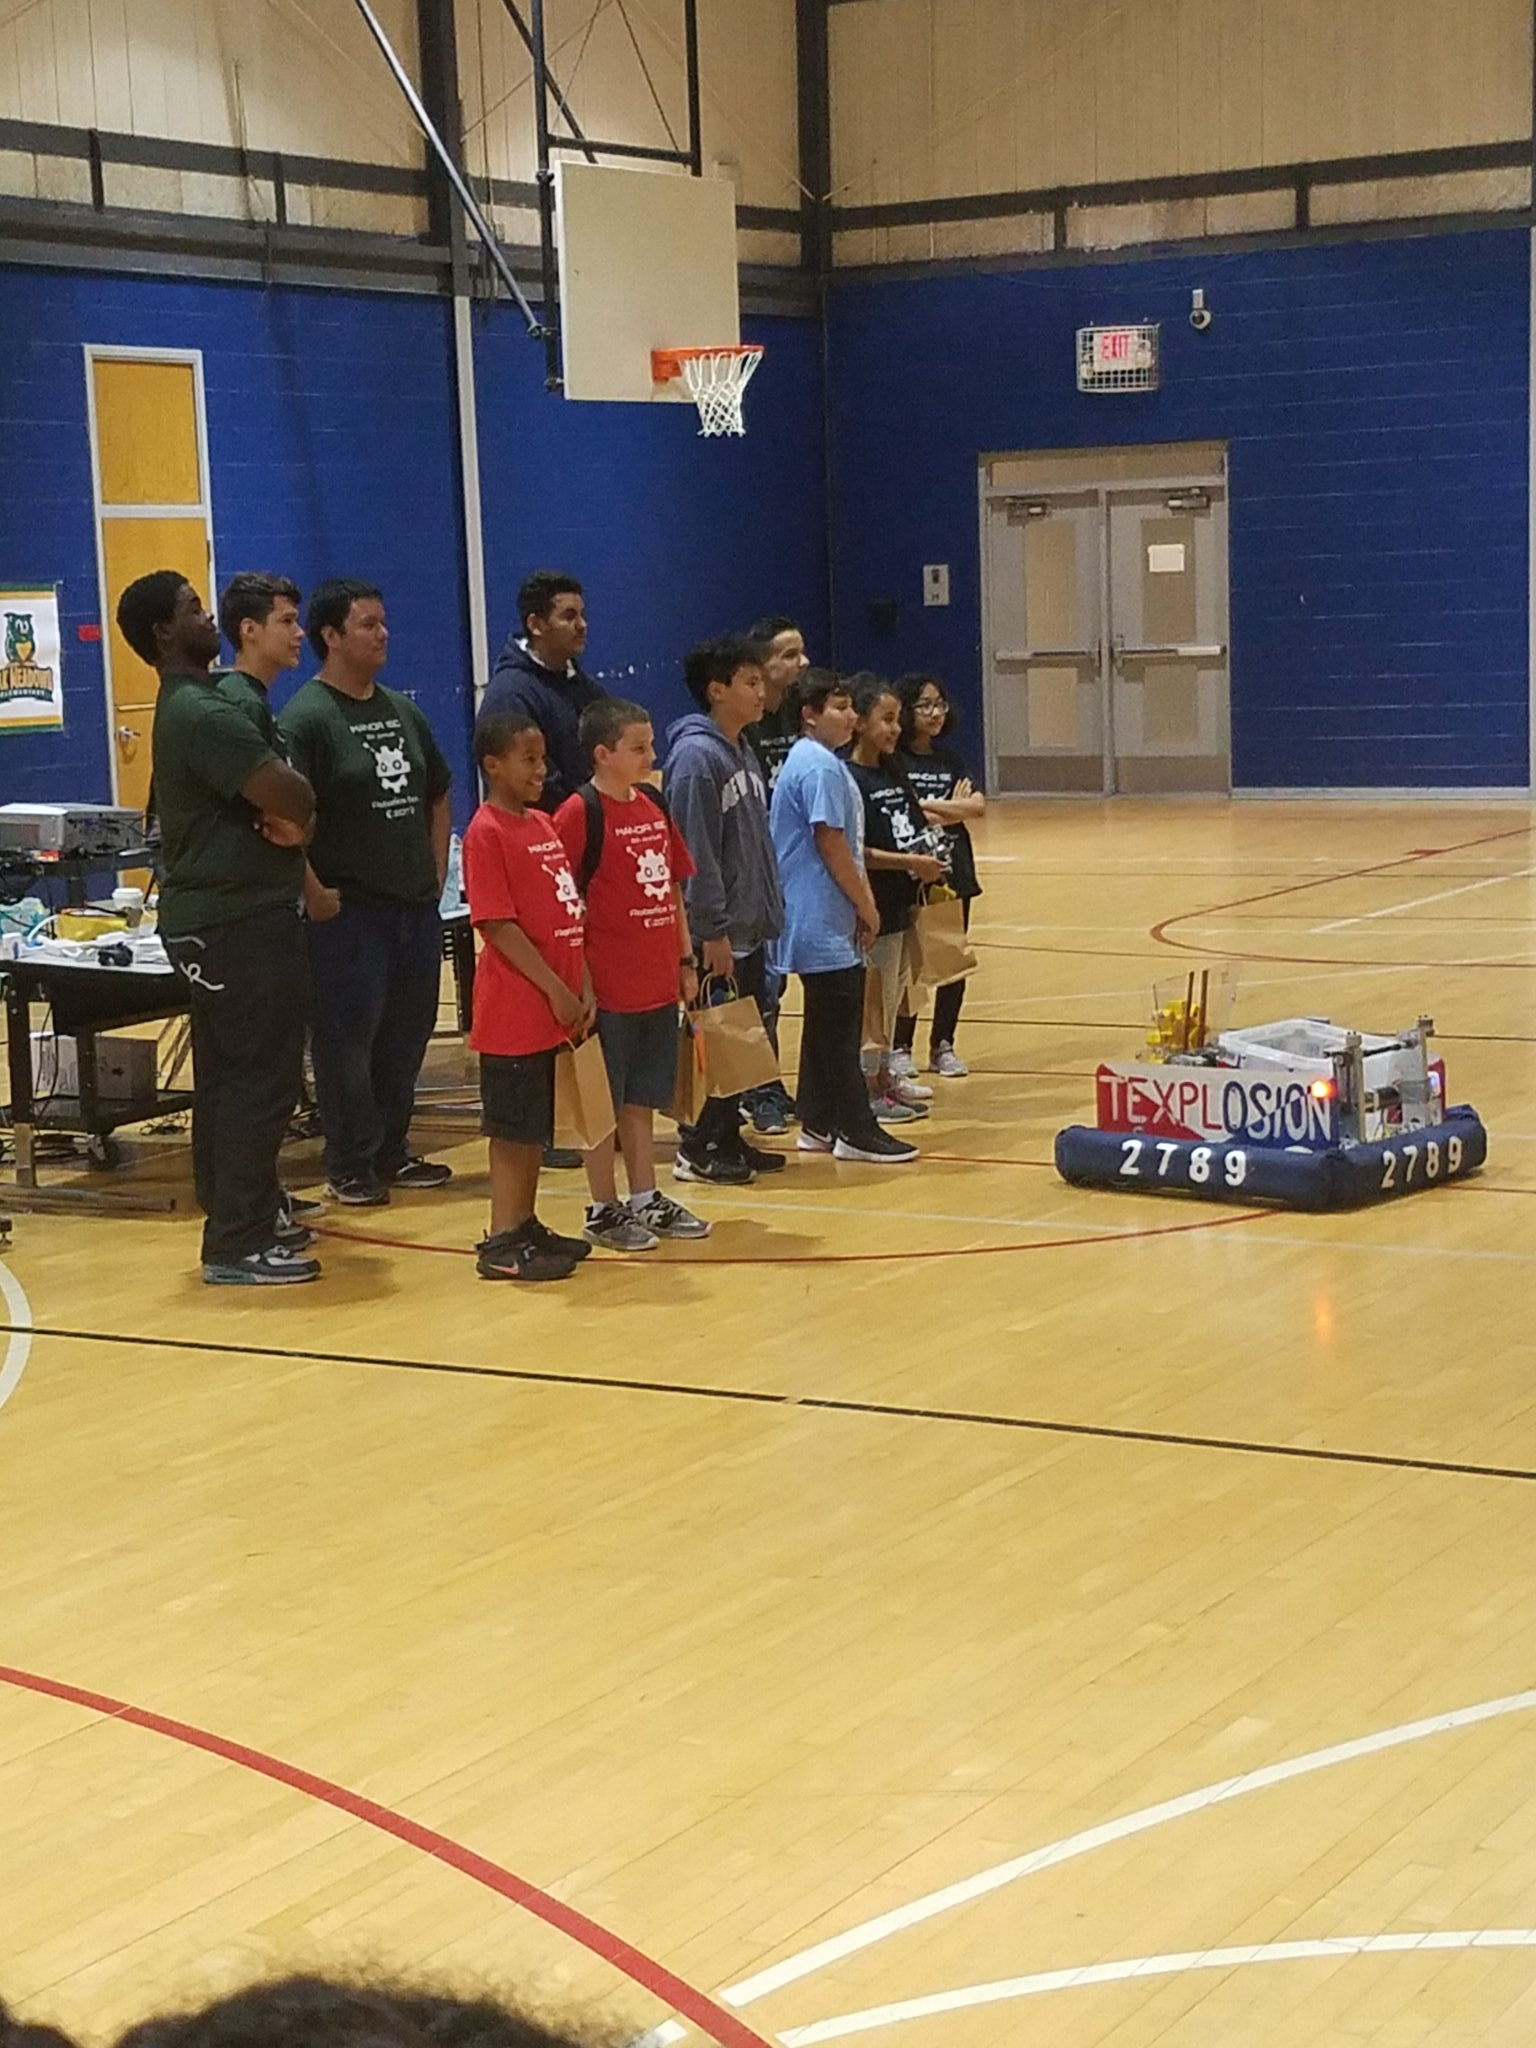 Got a team place 2nd at the #manorisd Robotics Expo! Go team #mes #manorelementary #iteachmanor https://t.co/zfWlb6WKFy